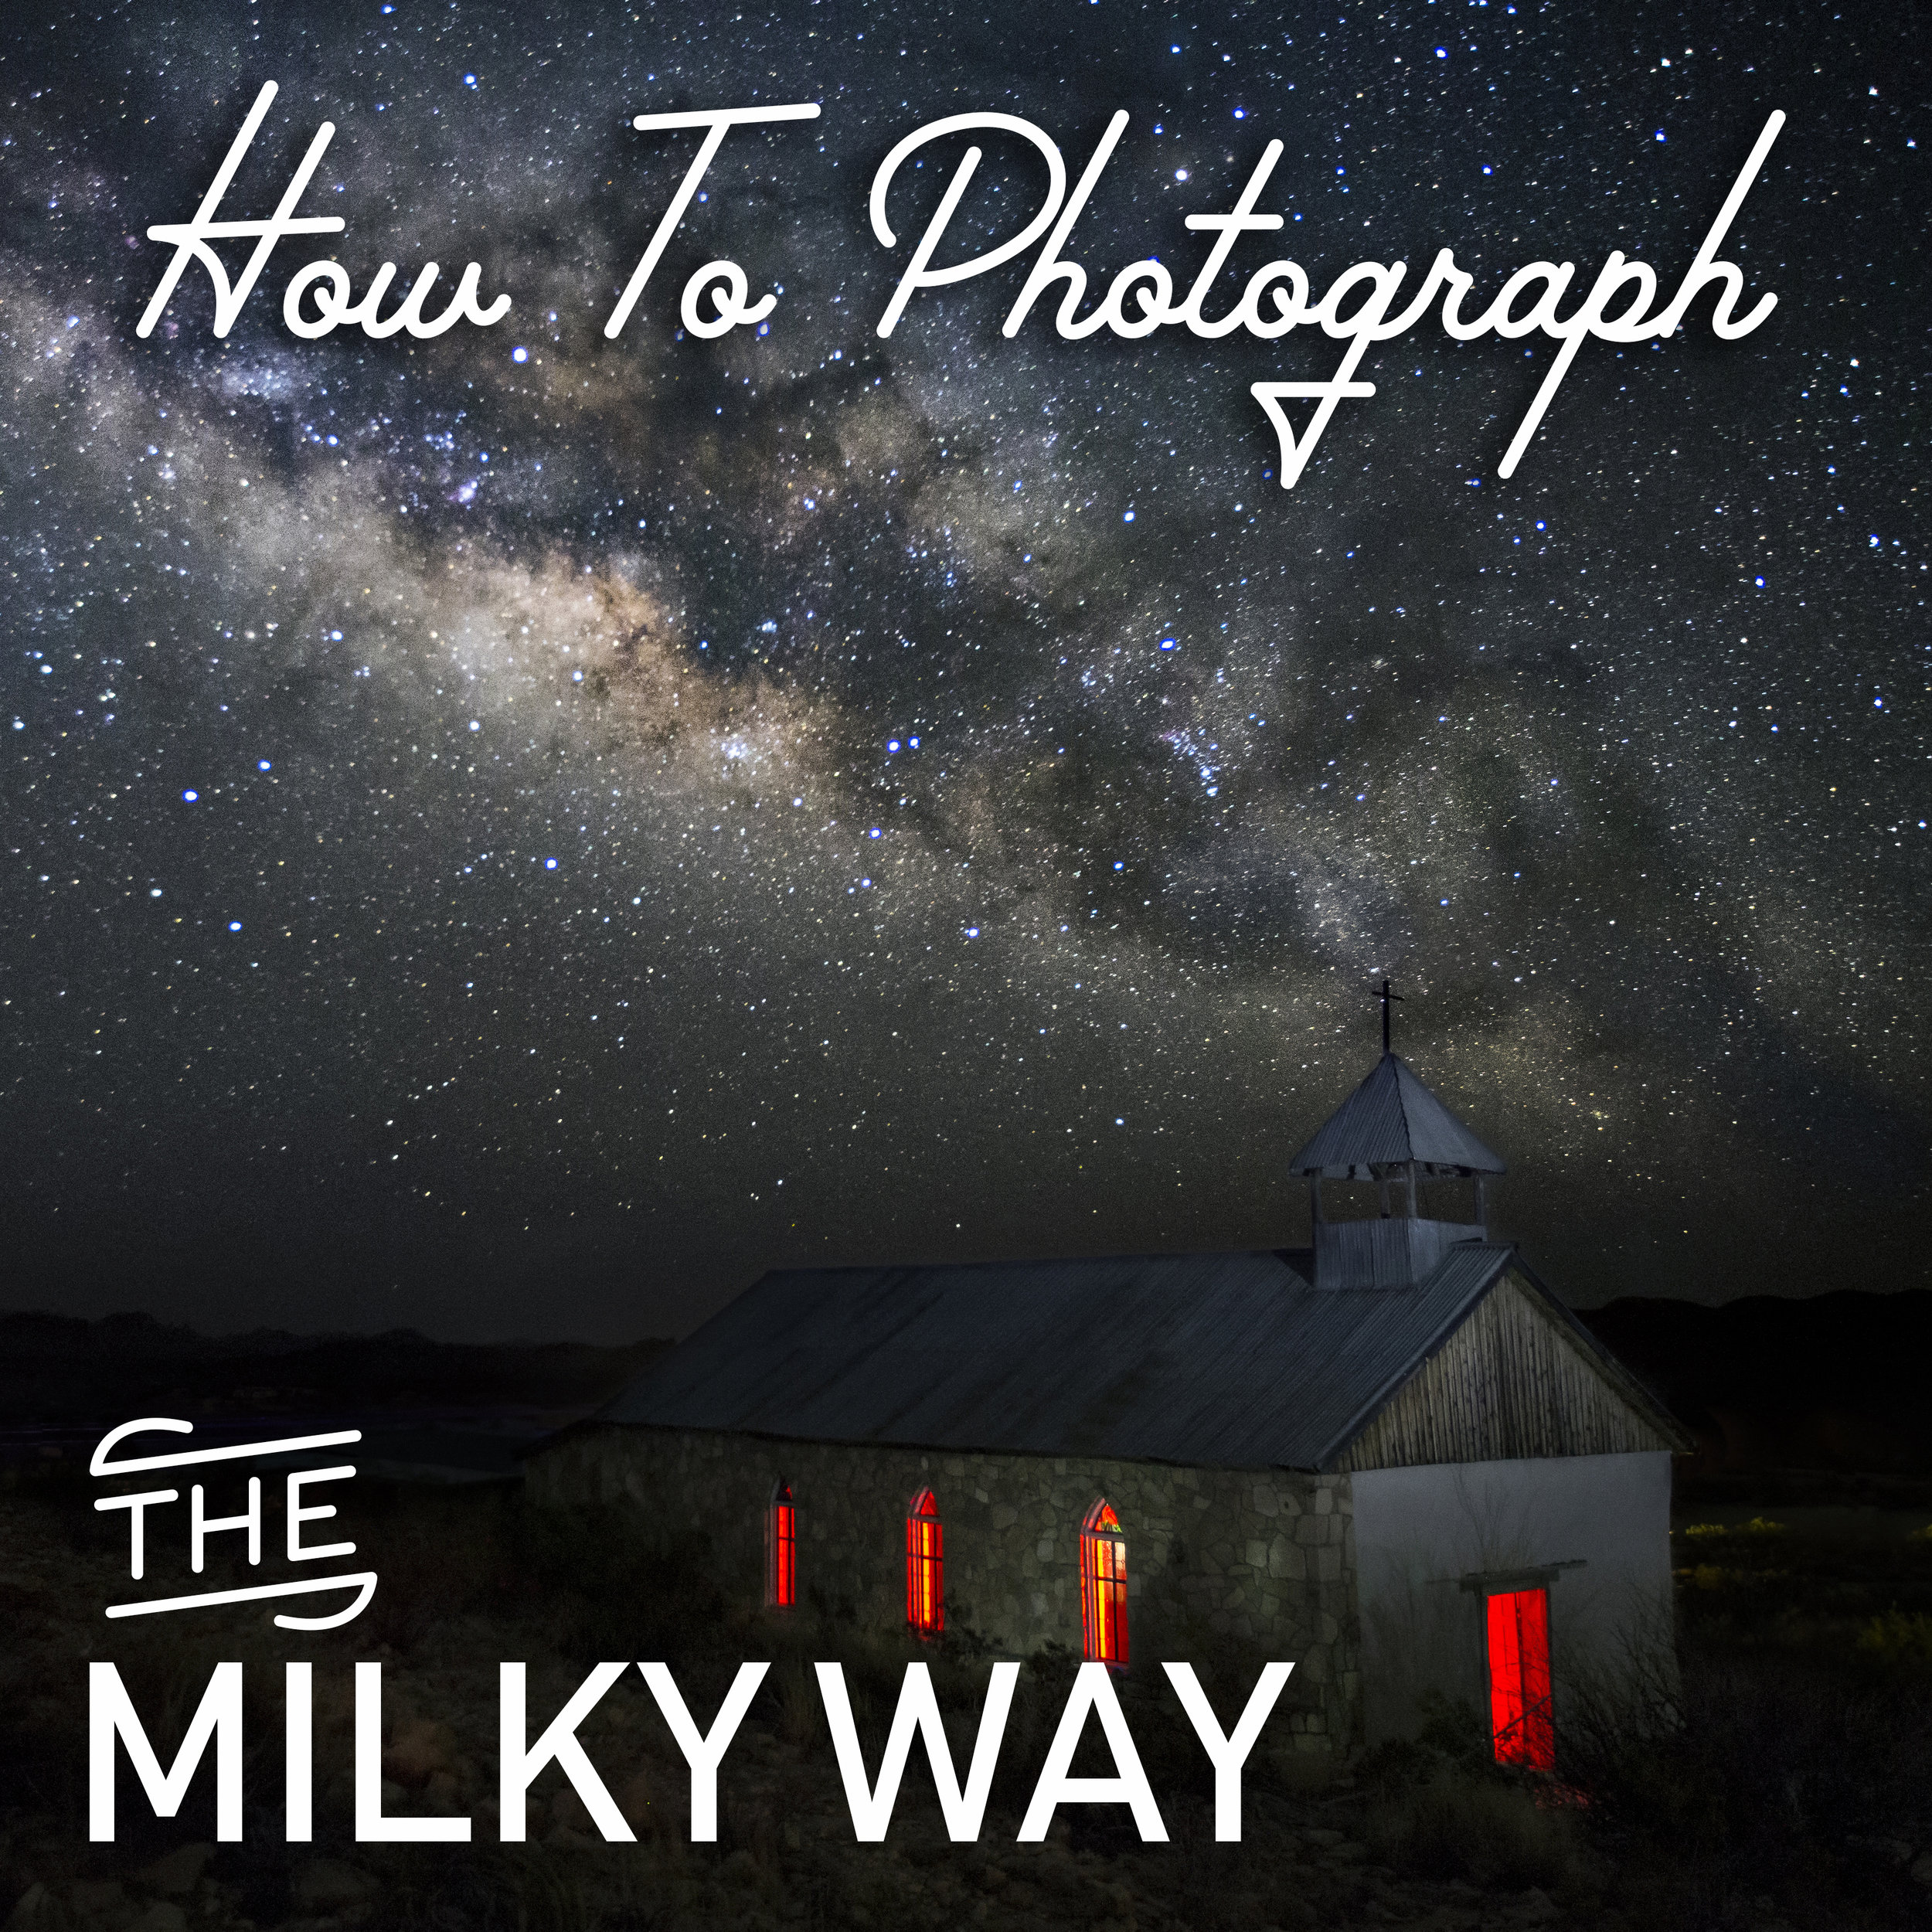 how to find see locate photograph take picture photos capture milky way galaxy stars astrophotography